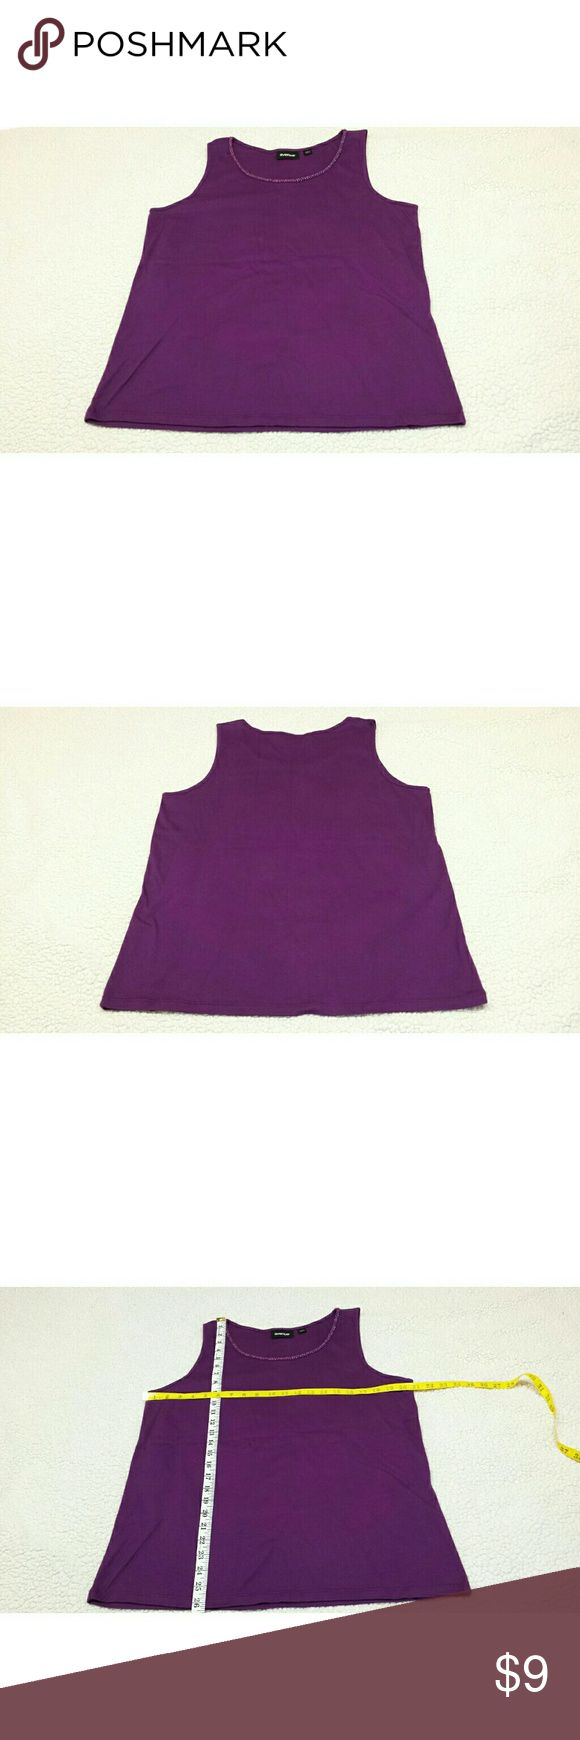 Best 25+ Purple tank top ideas on Pinterest | High neck tank top ...